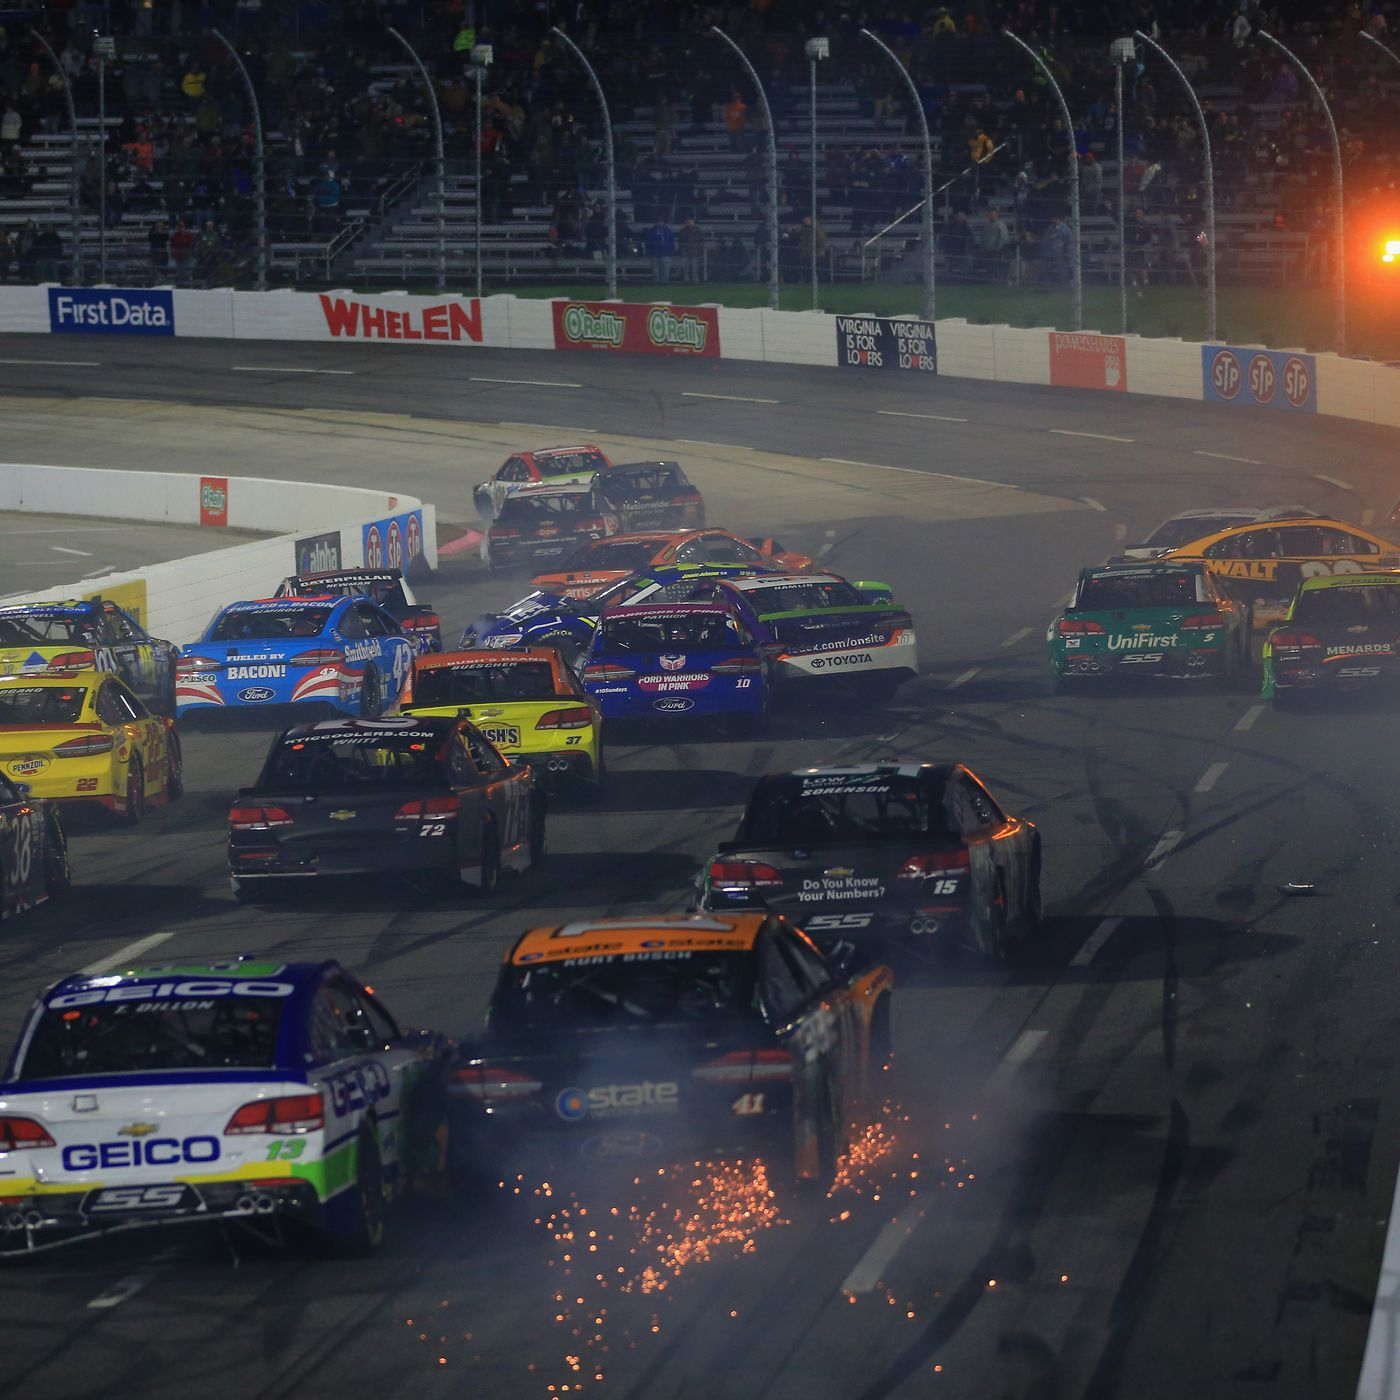 Nascar At Martinsville Takeaways Denny Hamlin Chase Elliott 3 Way Switch Menards Altercation Gives The Playoff Drama It Wants